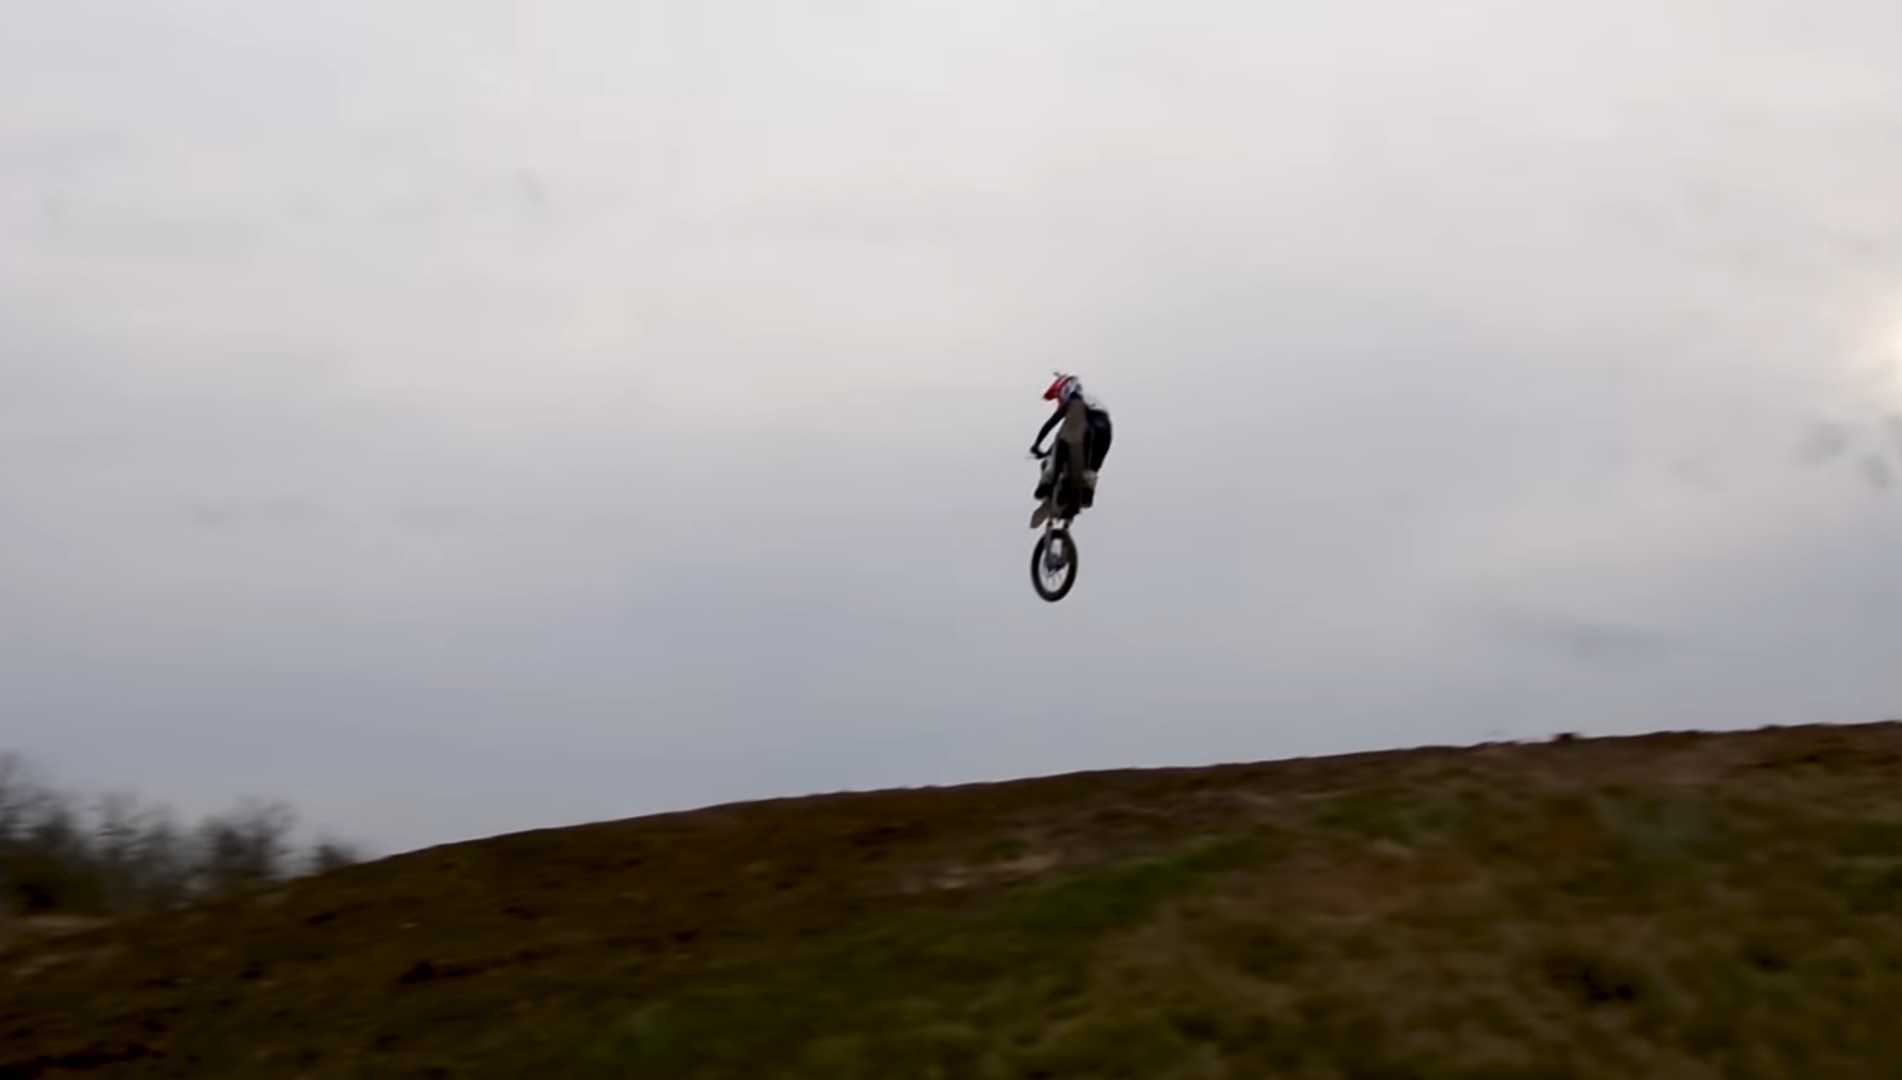 control dirt bike in the air